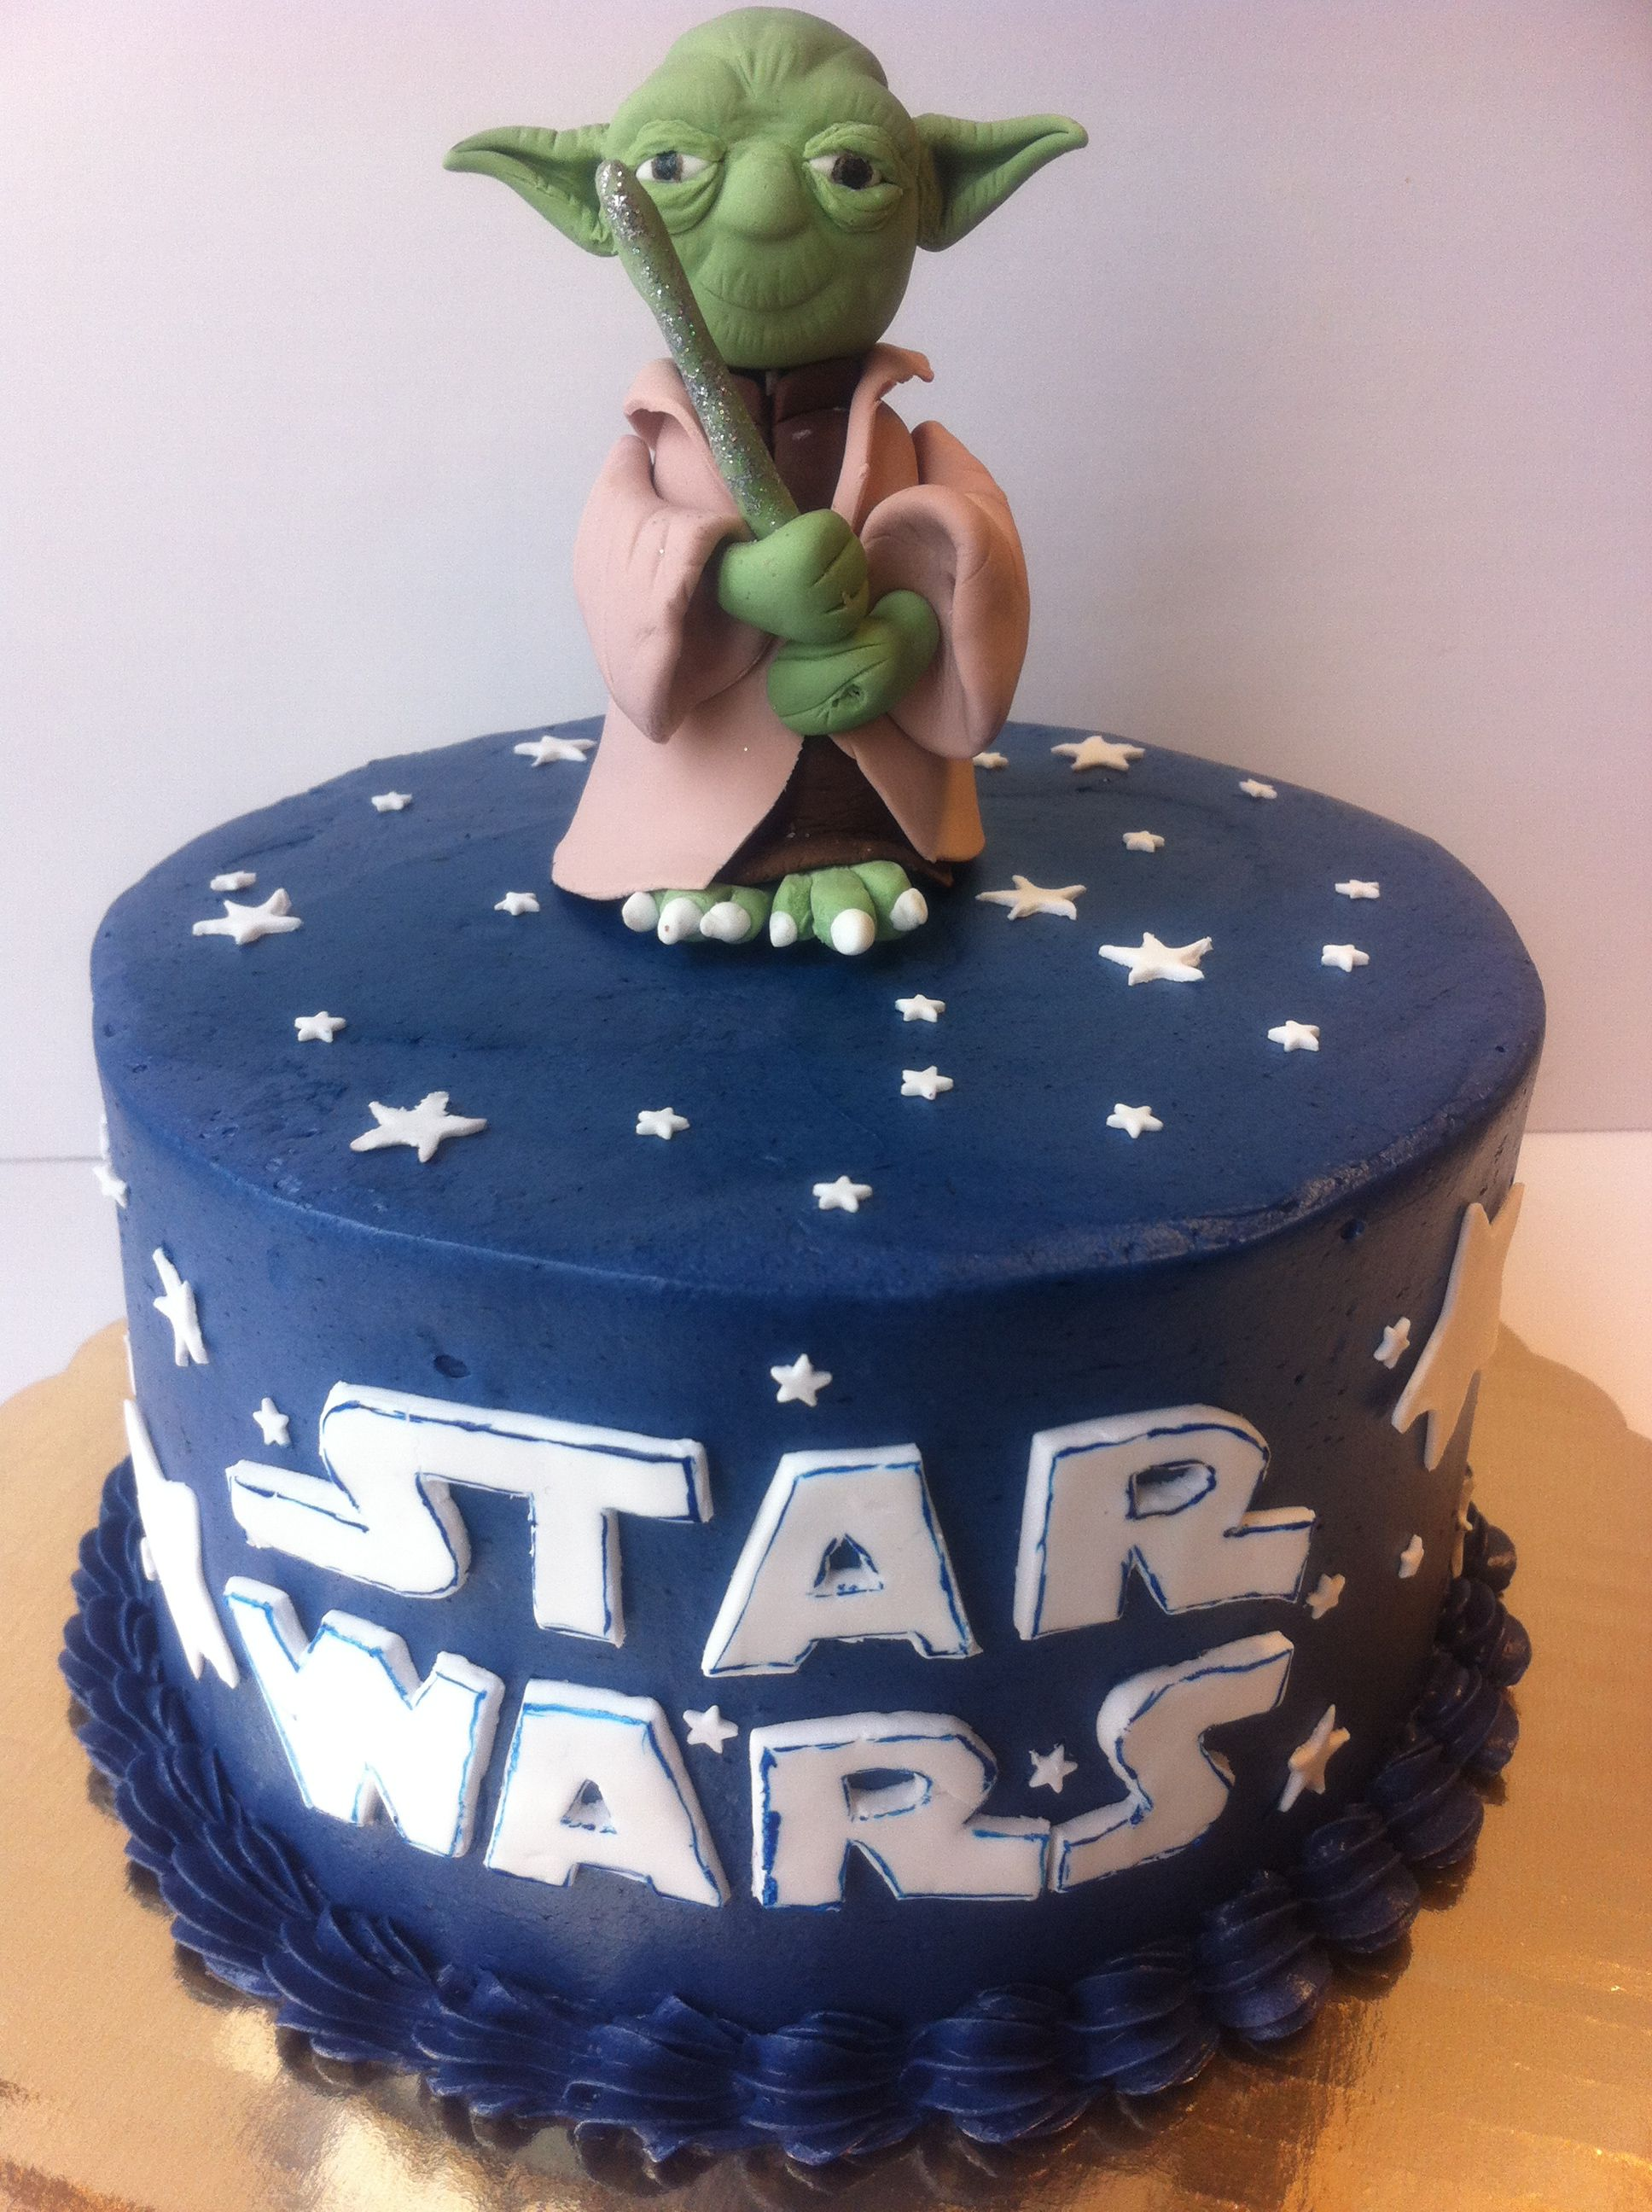 Star Wars cake (for nephew??)